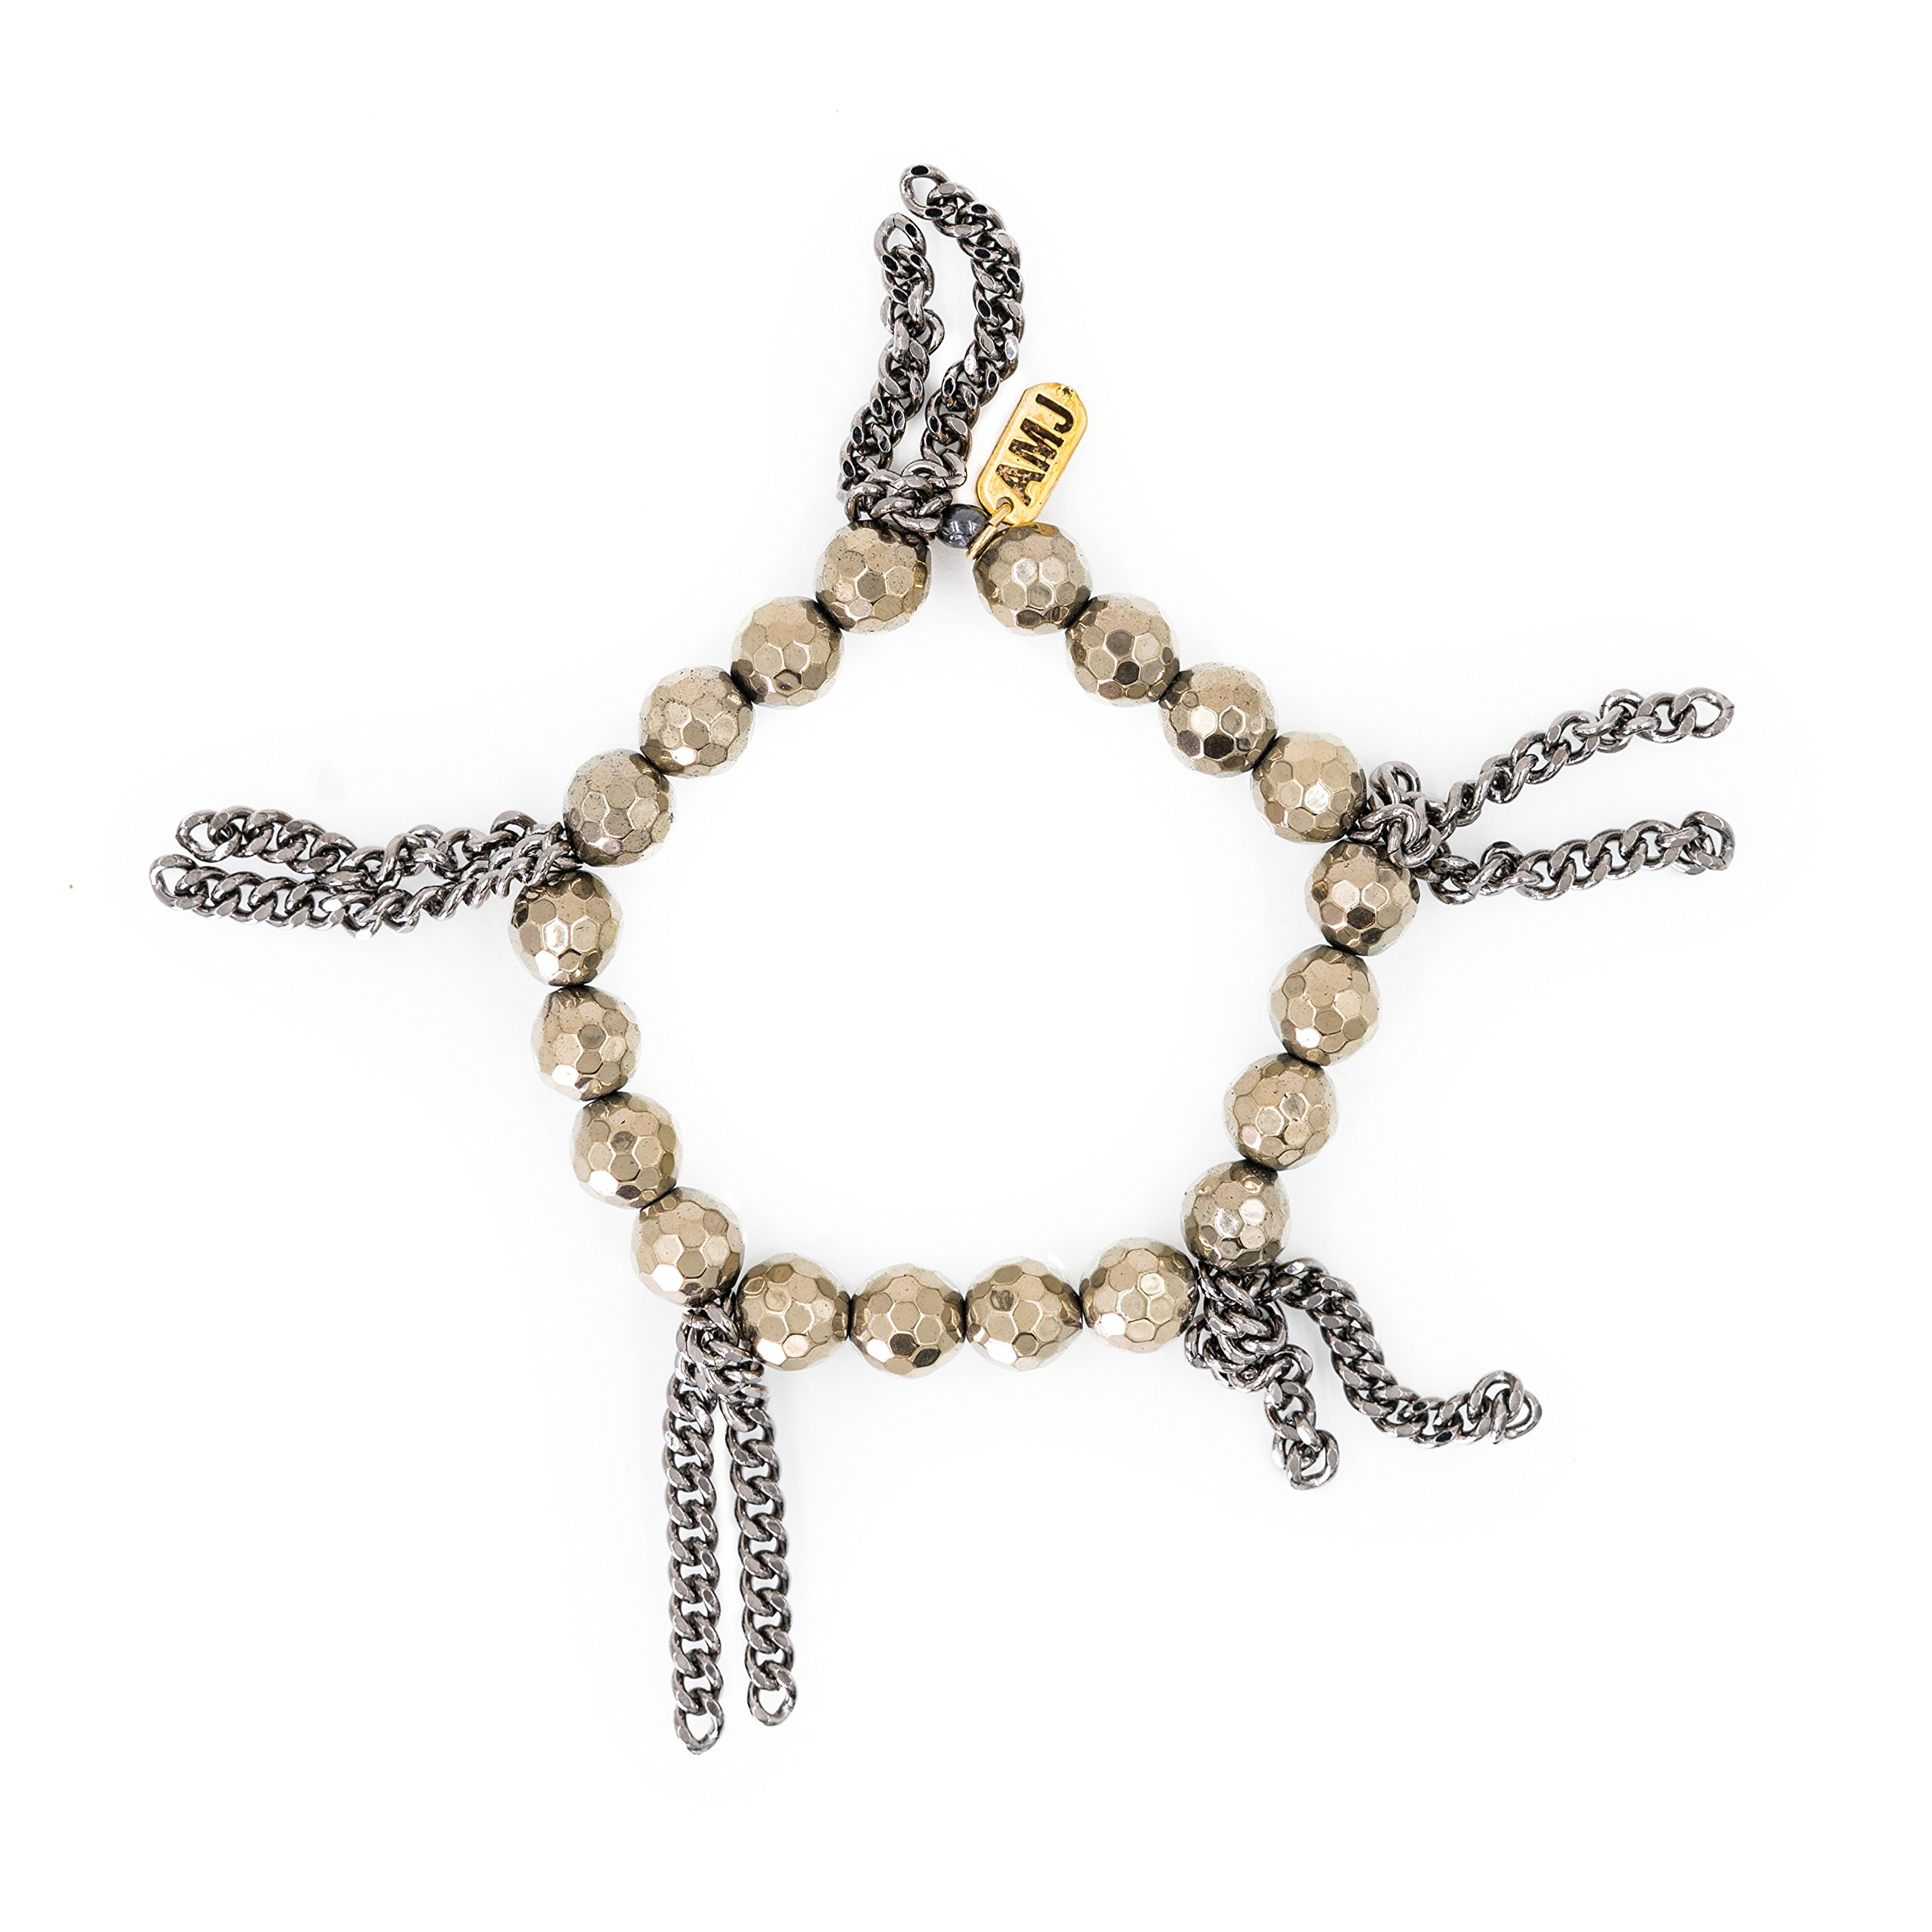 A. Marie Cha Cha Metallic Gold Tone Disco Hematite Faceted Stones with Fringe Stretch Bracelet